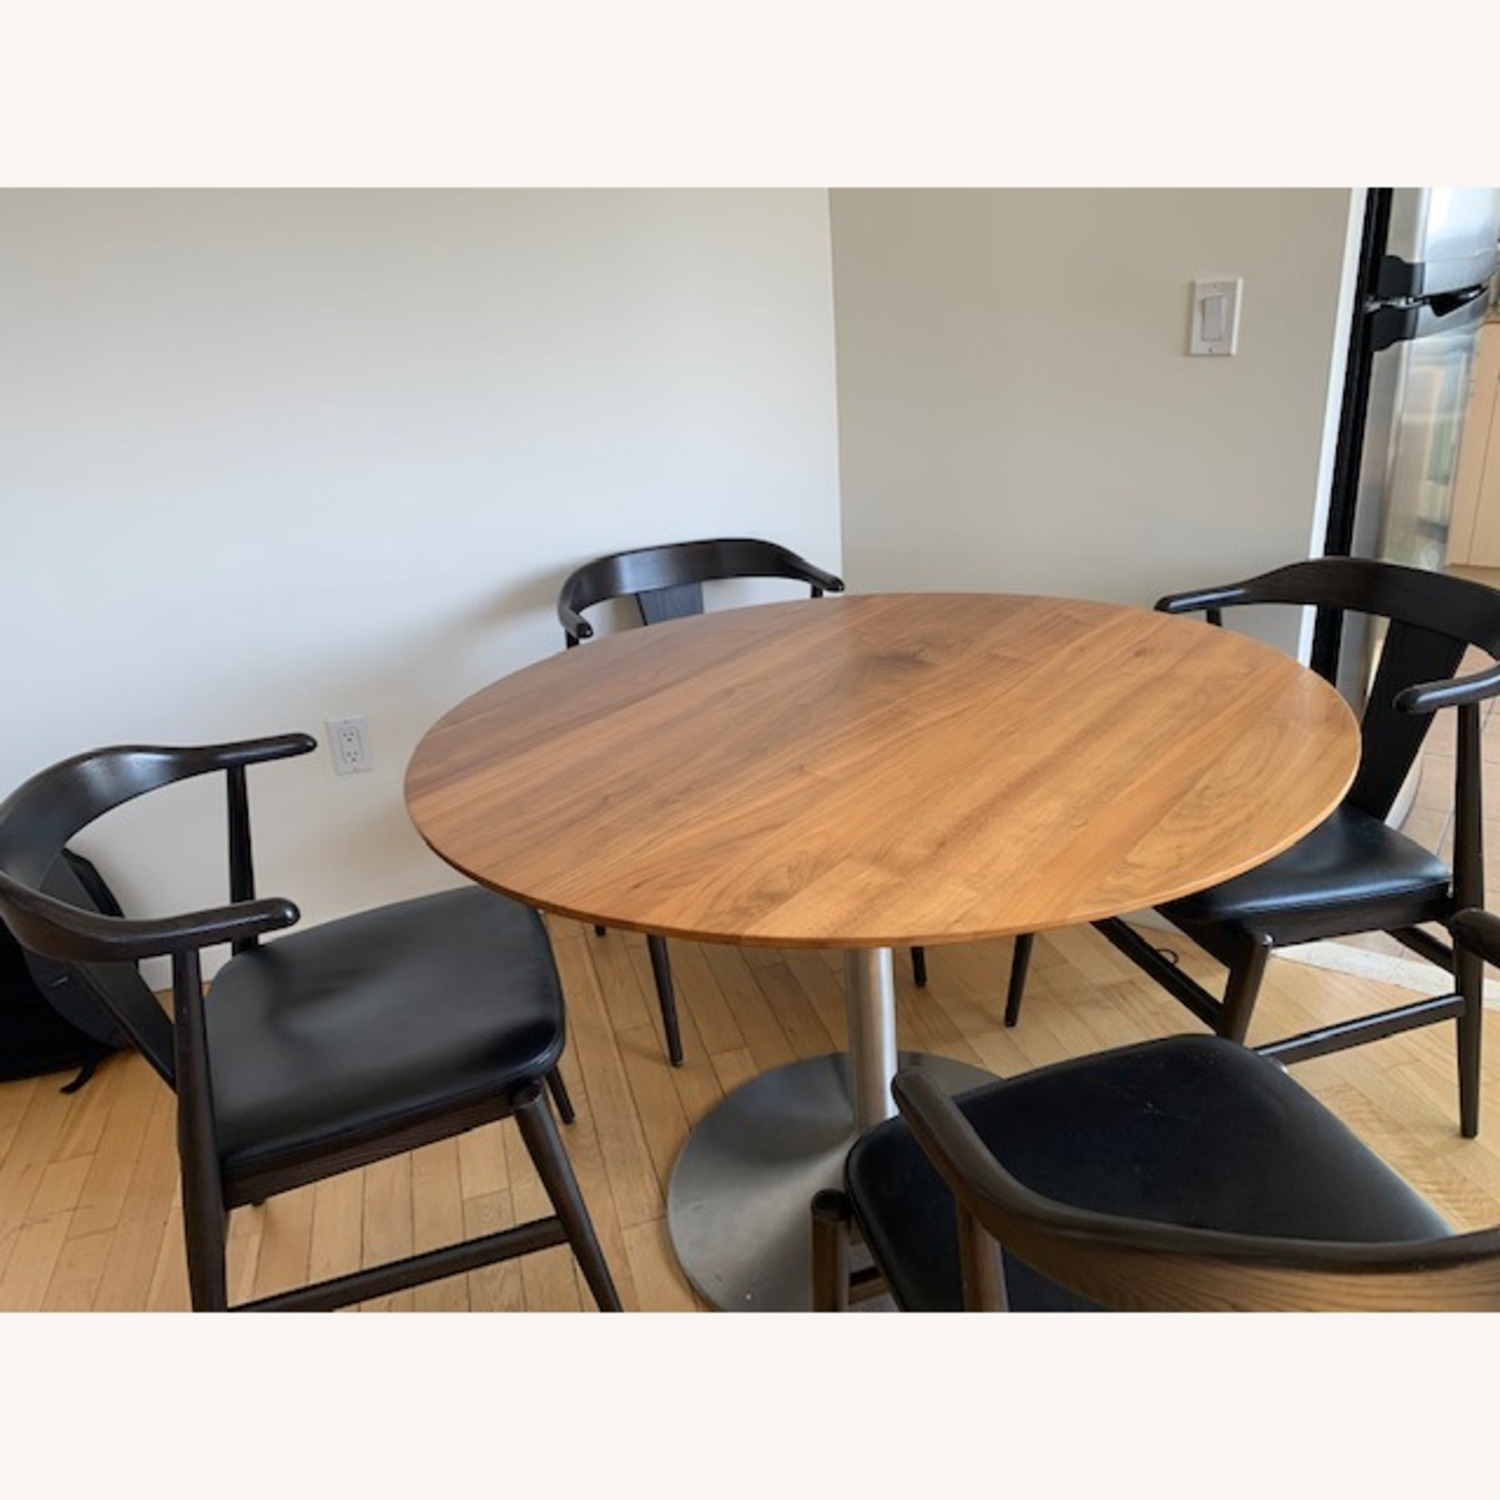 Room and Board Evans Chairs with Leather seats - image-4